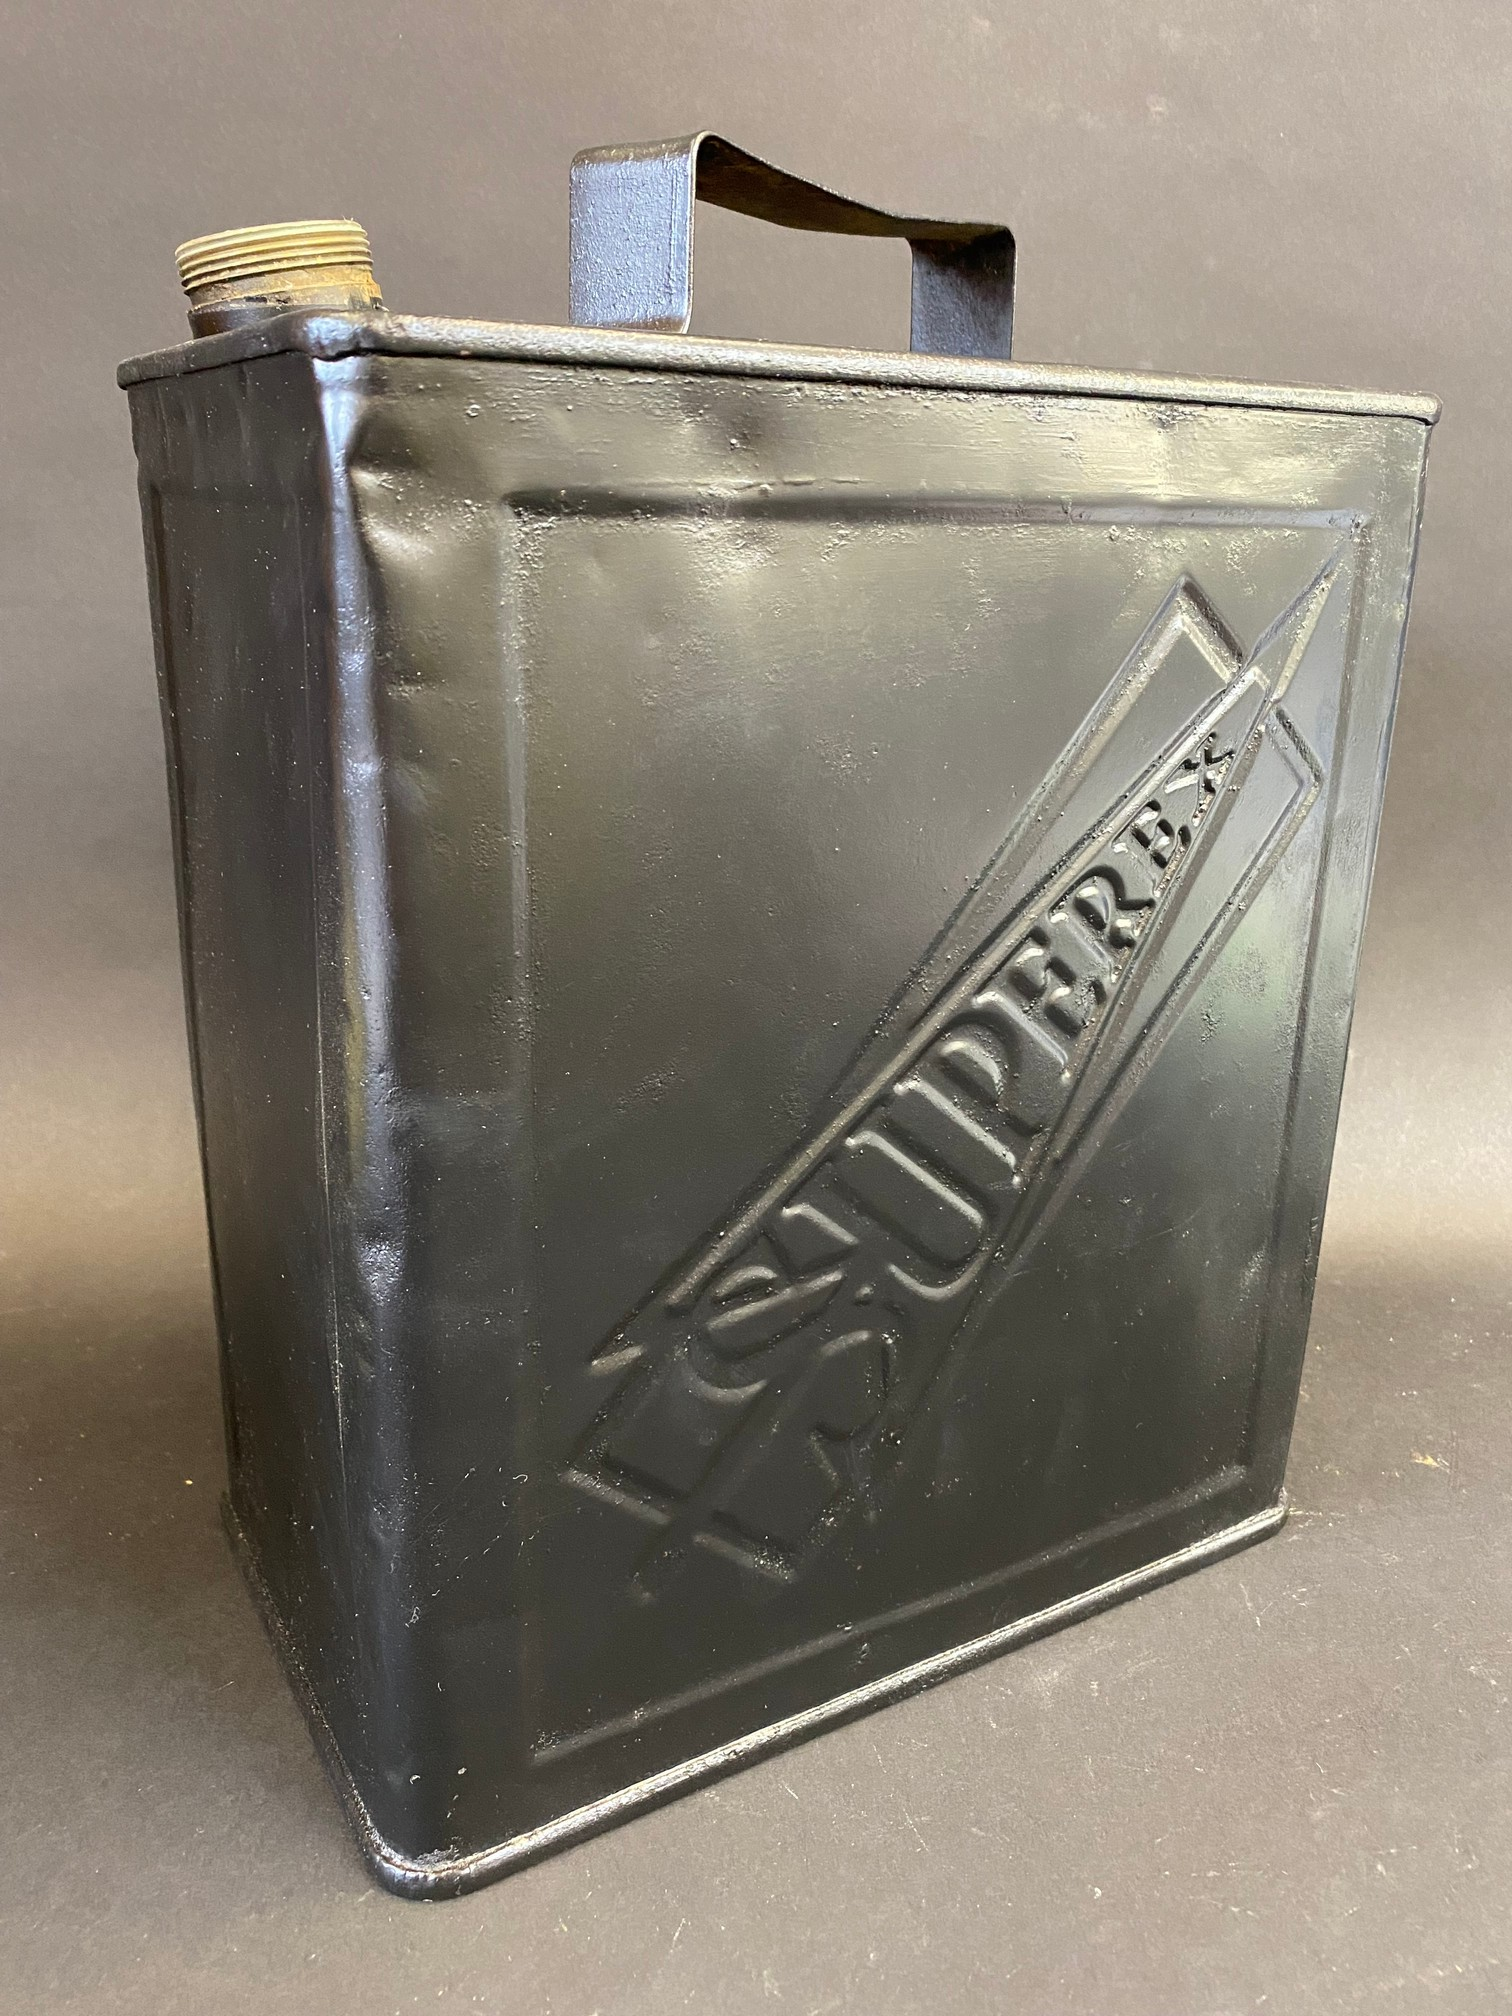 An Esuperex two gallon petrol can in straight condition.